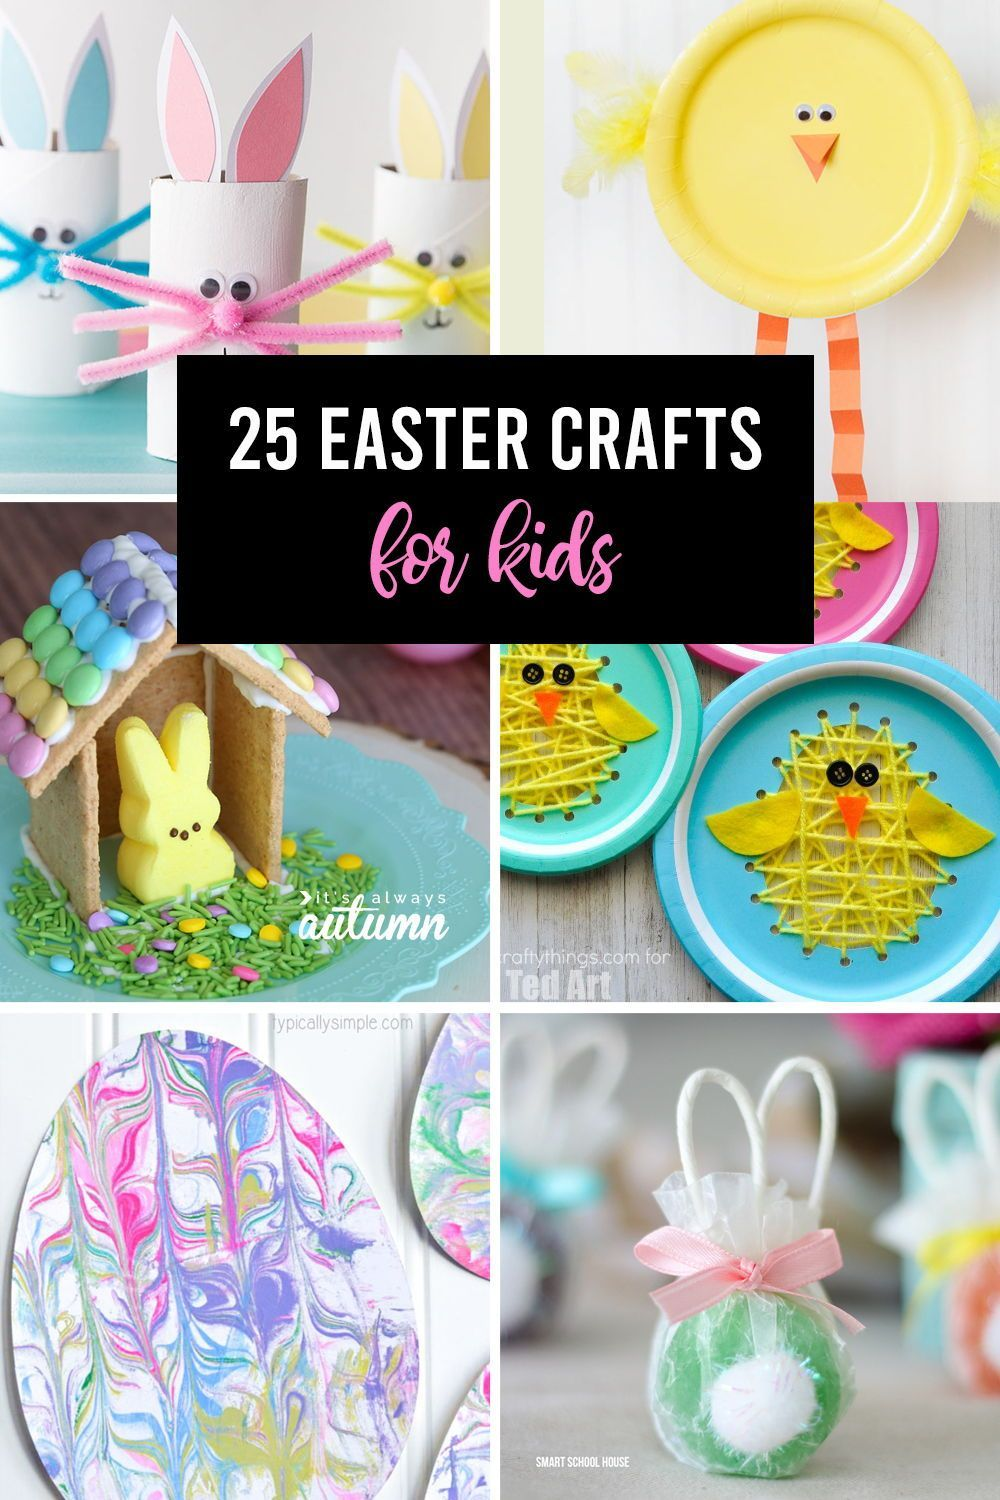 Click through for 25 adorable Easter crafts for kids. These are easy crafts your kids can make with simple items.